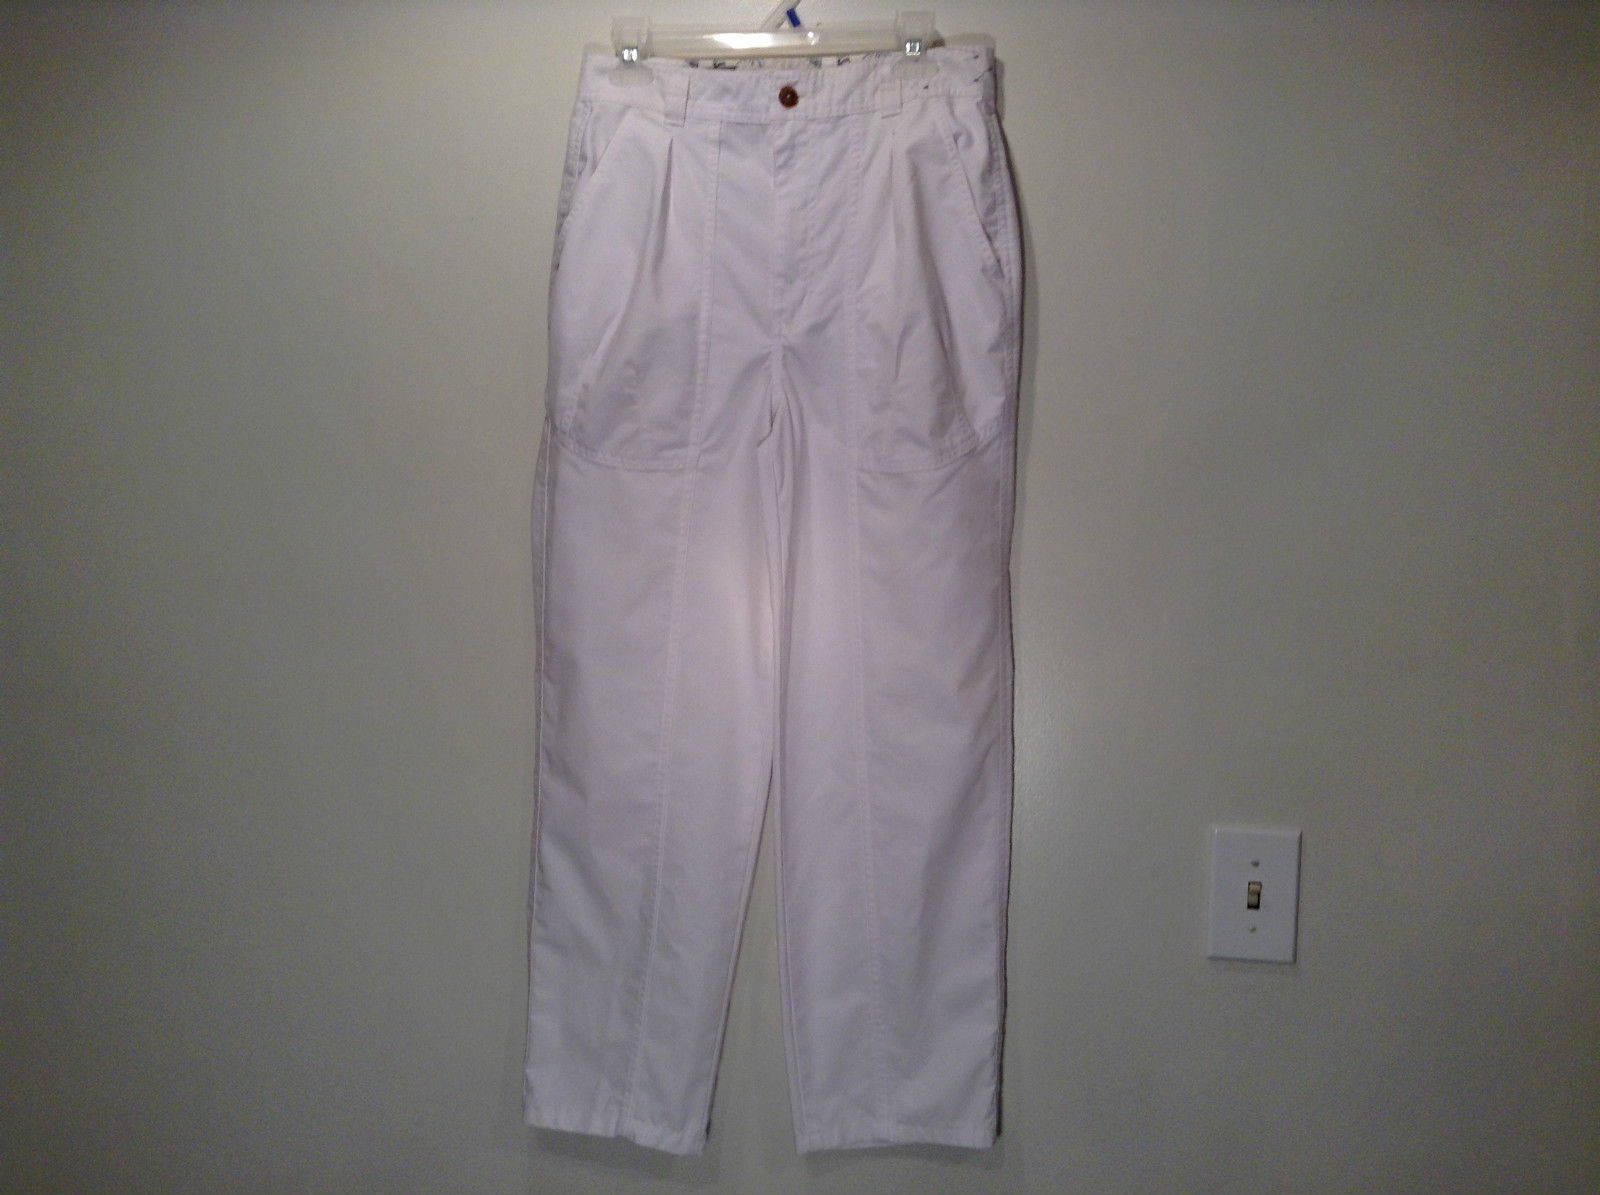 Weekends White Pleated Front Casual Pants Size 32 Front and Back Pockets